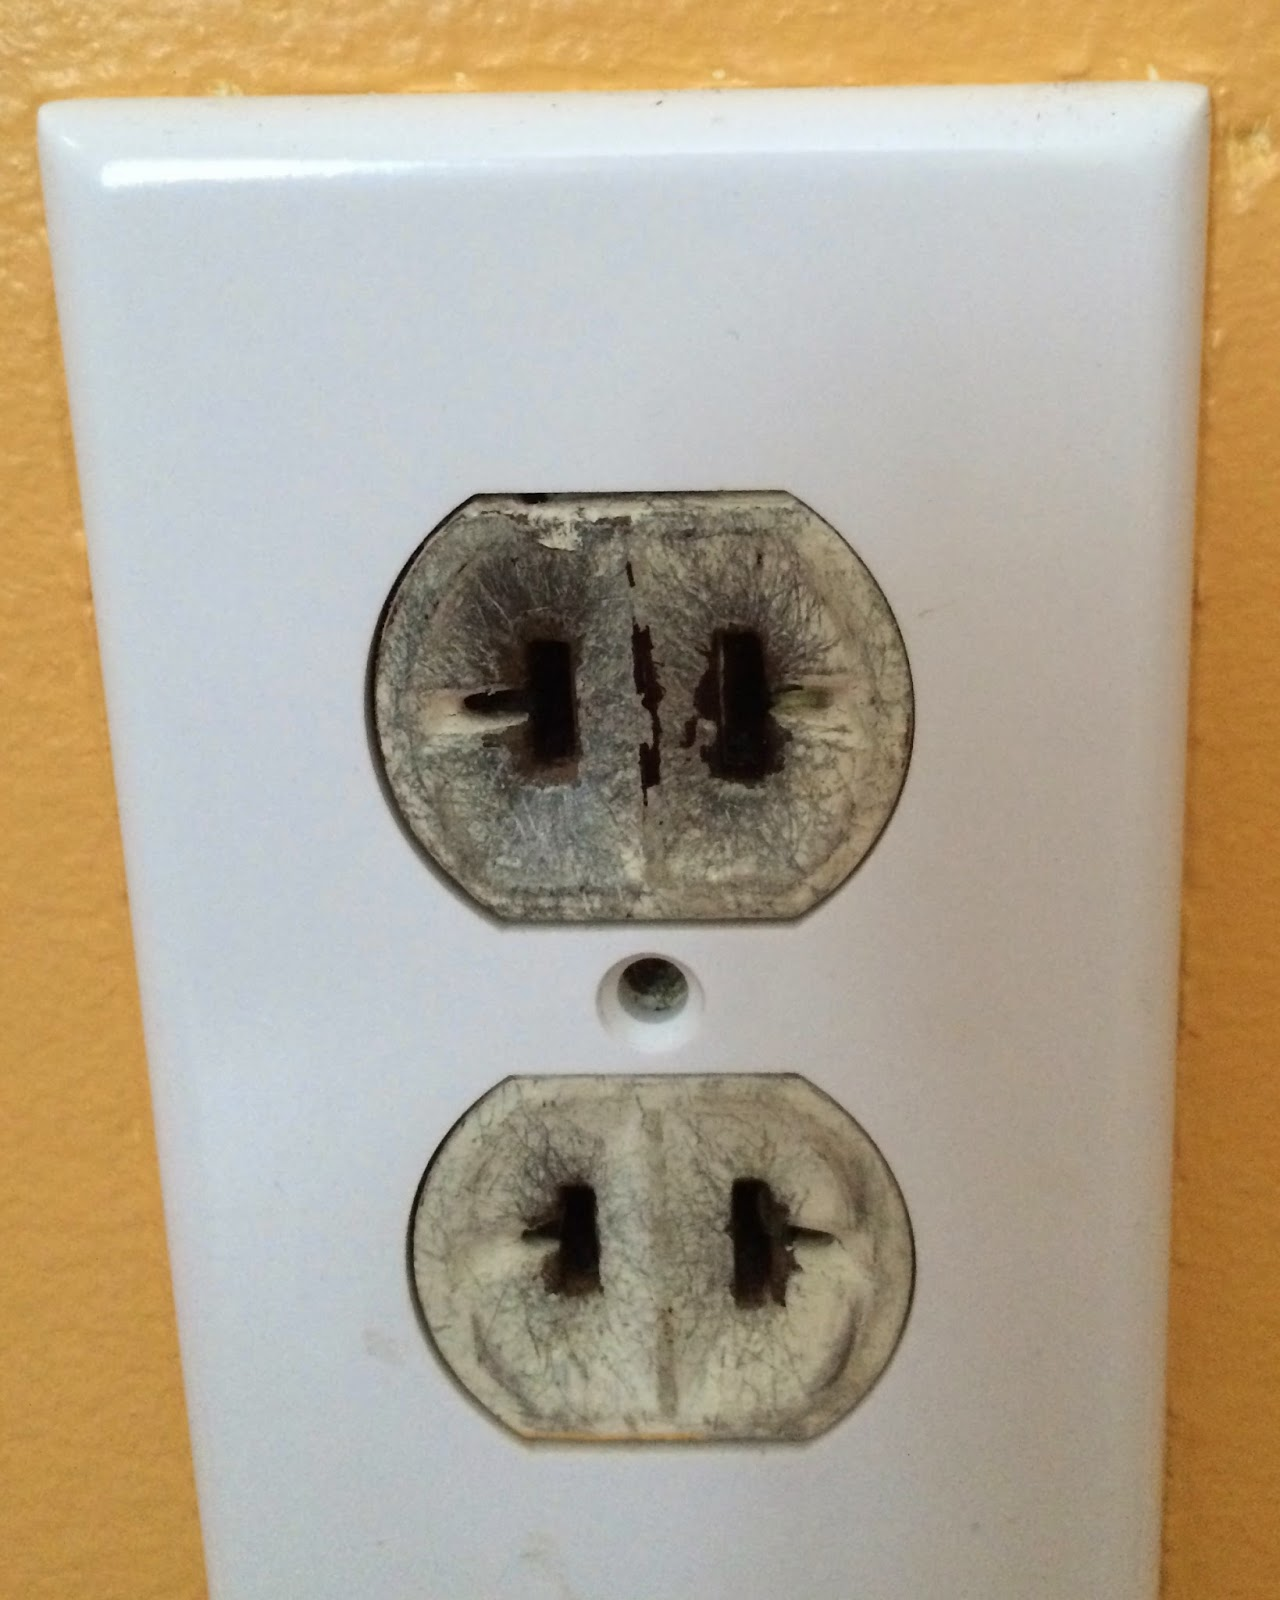 b i redux one last post about electrical stuff the white outlets i removed from the sunroom went to replace old outlets that were just dirty and or painted over it took way longer than i was expecting